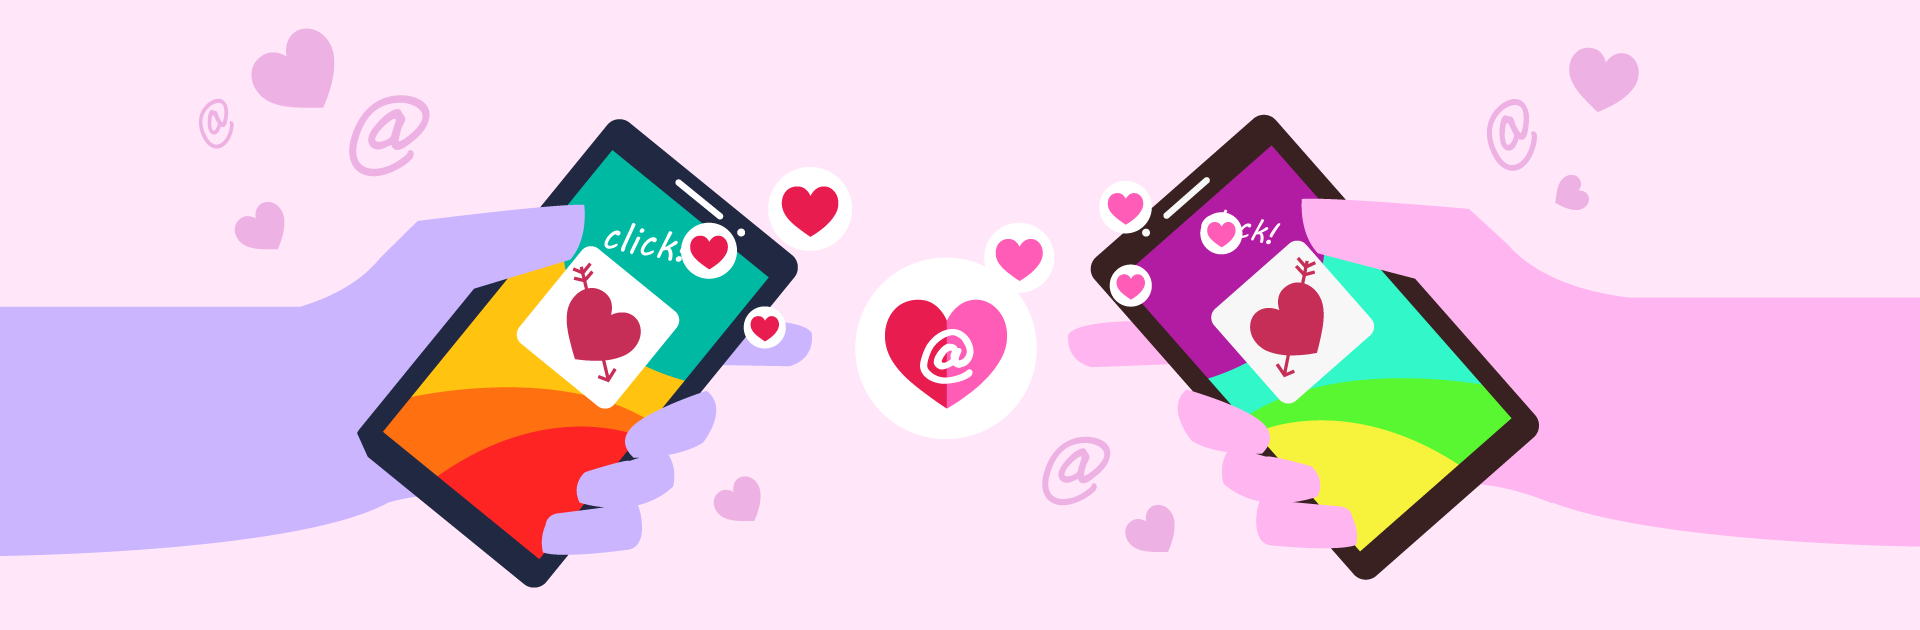 do online dating romances lead to long-term relationships